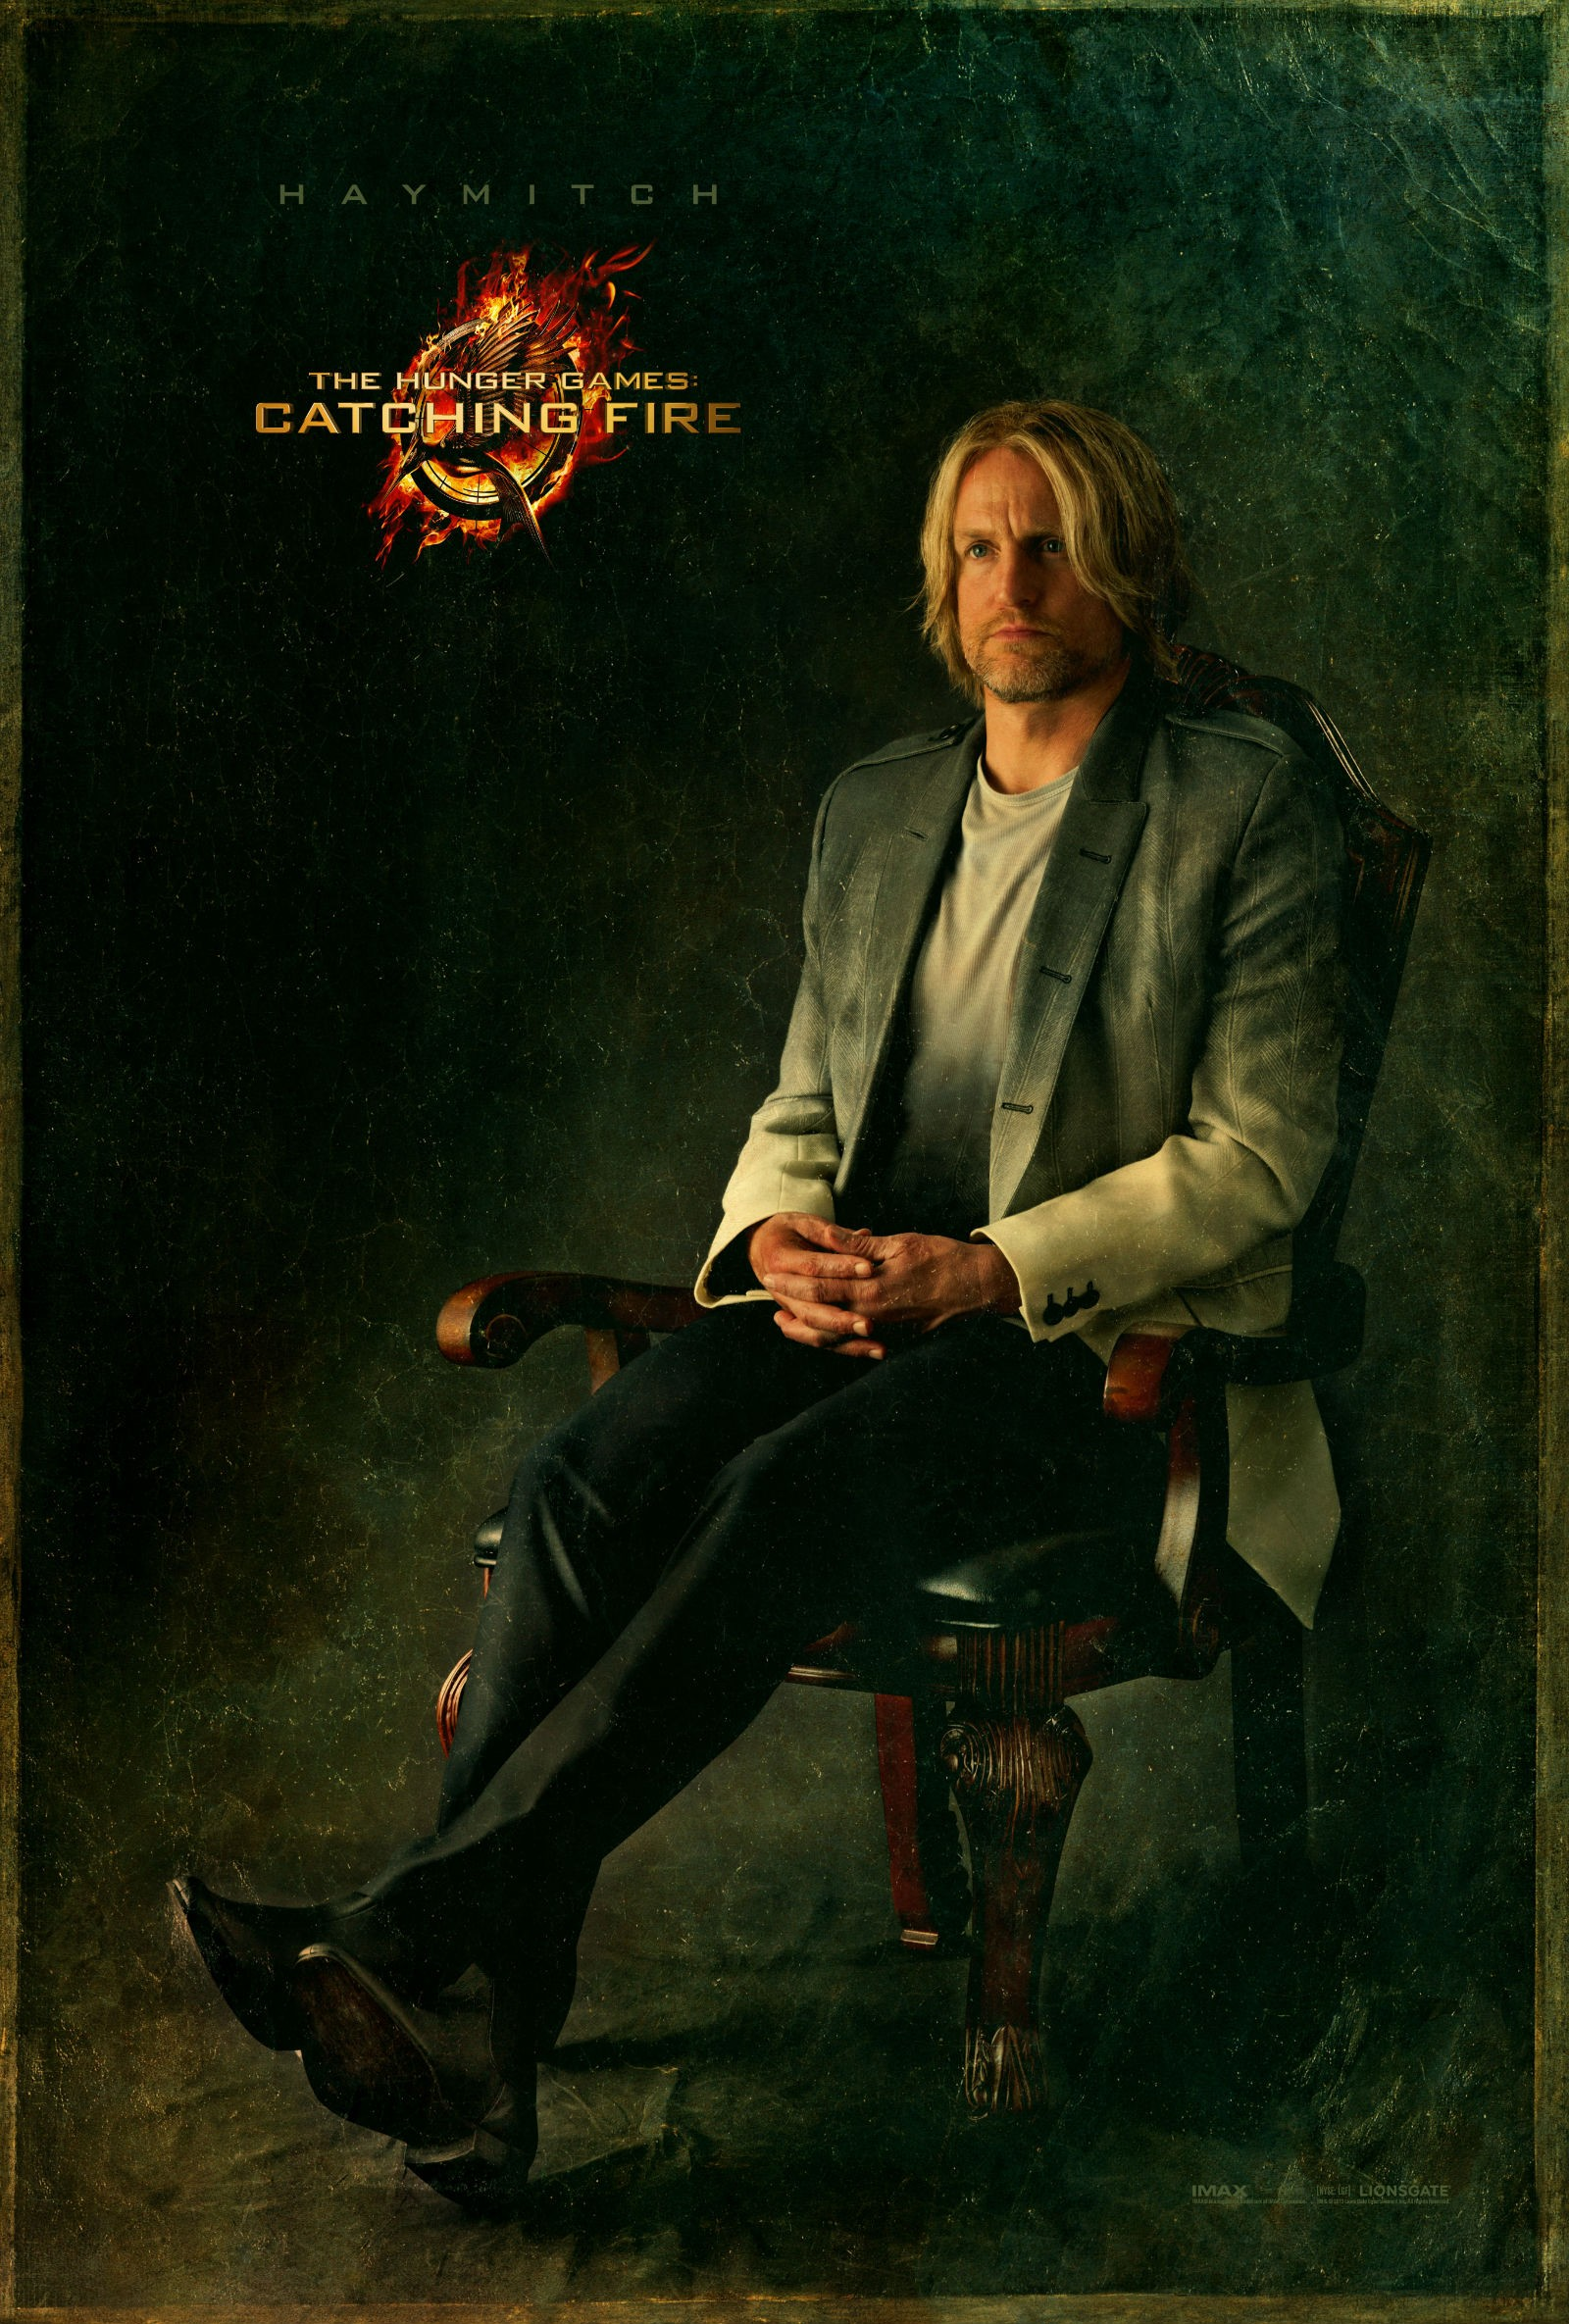 Catching Fire Haymitch Movie Poster New Catching Fire Character Poster Featuring Haymitch